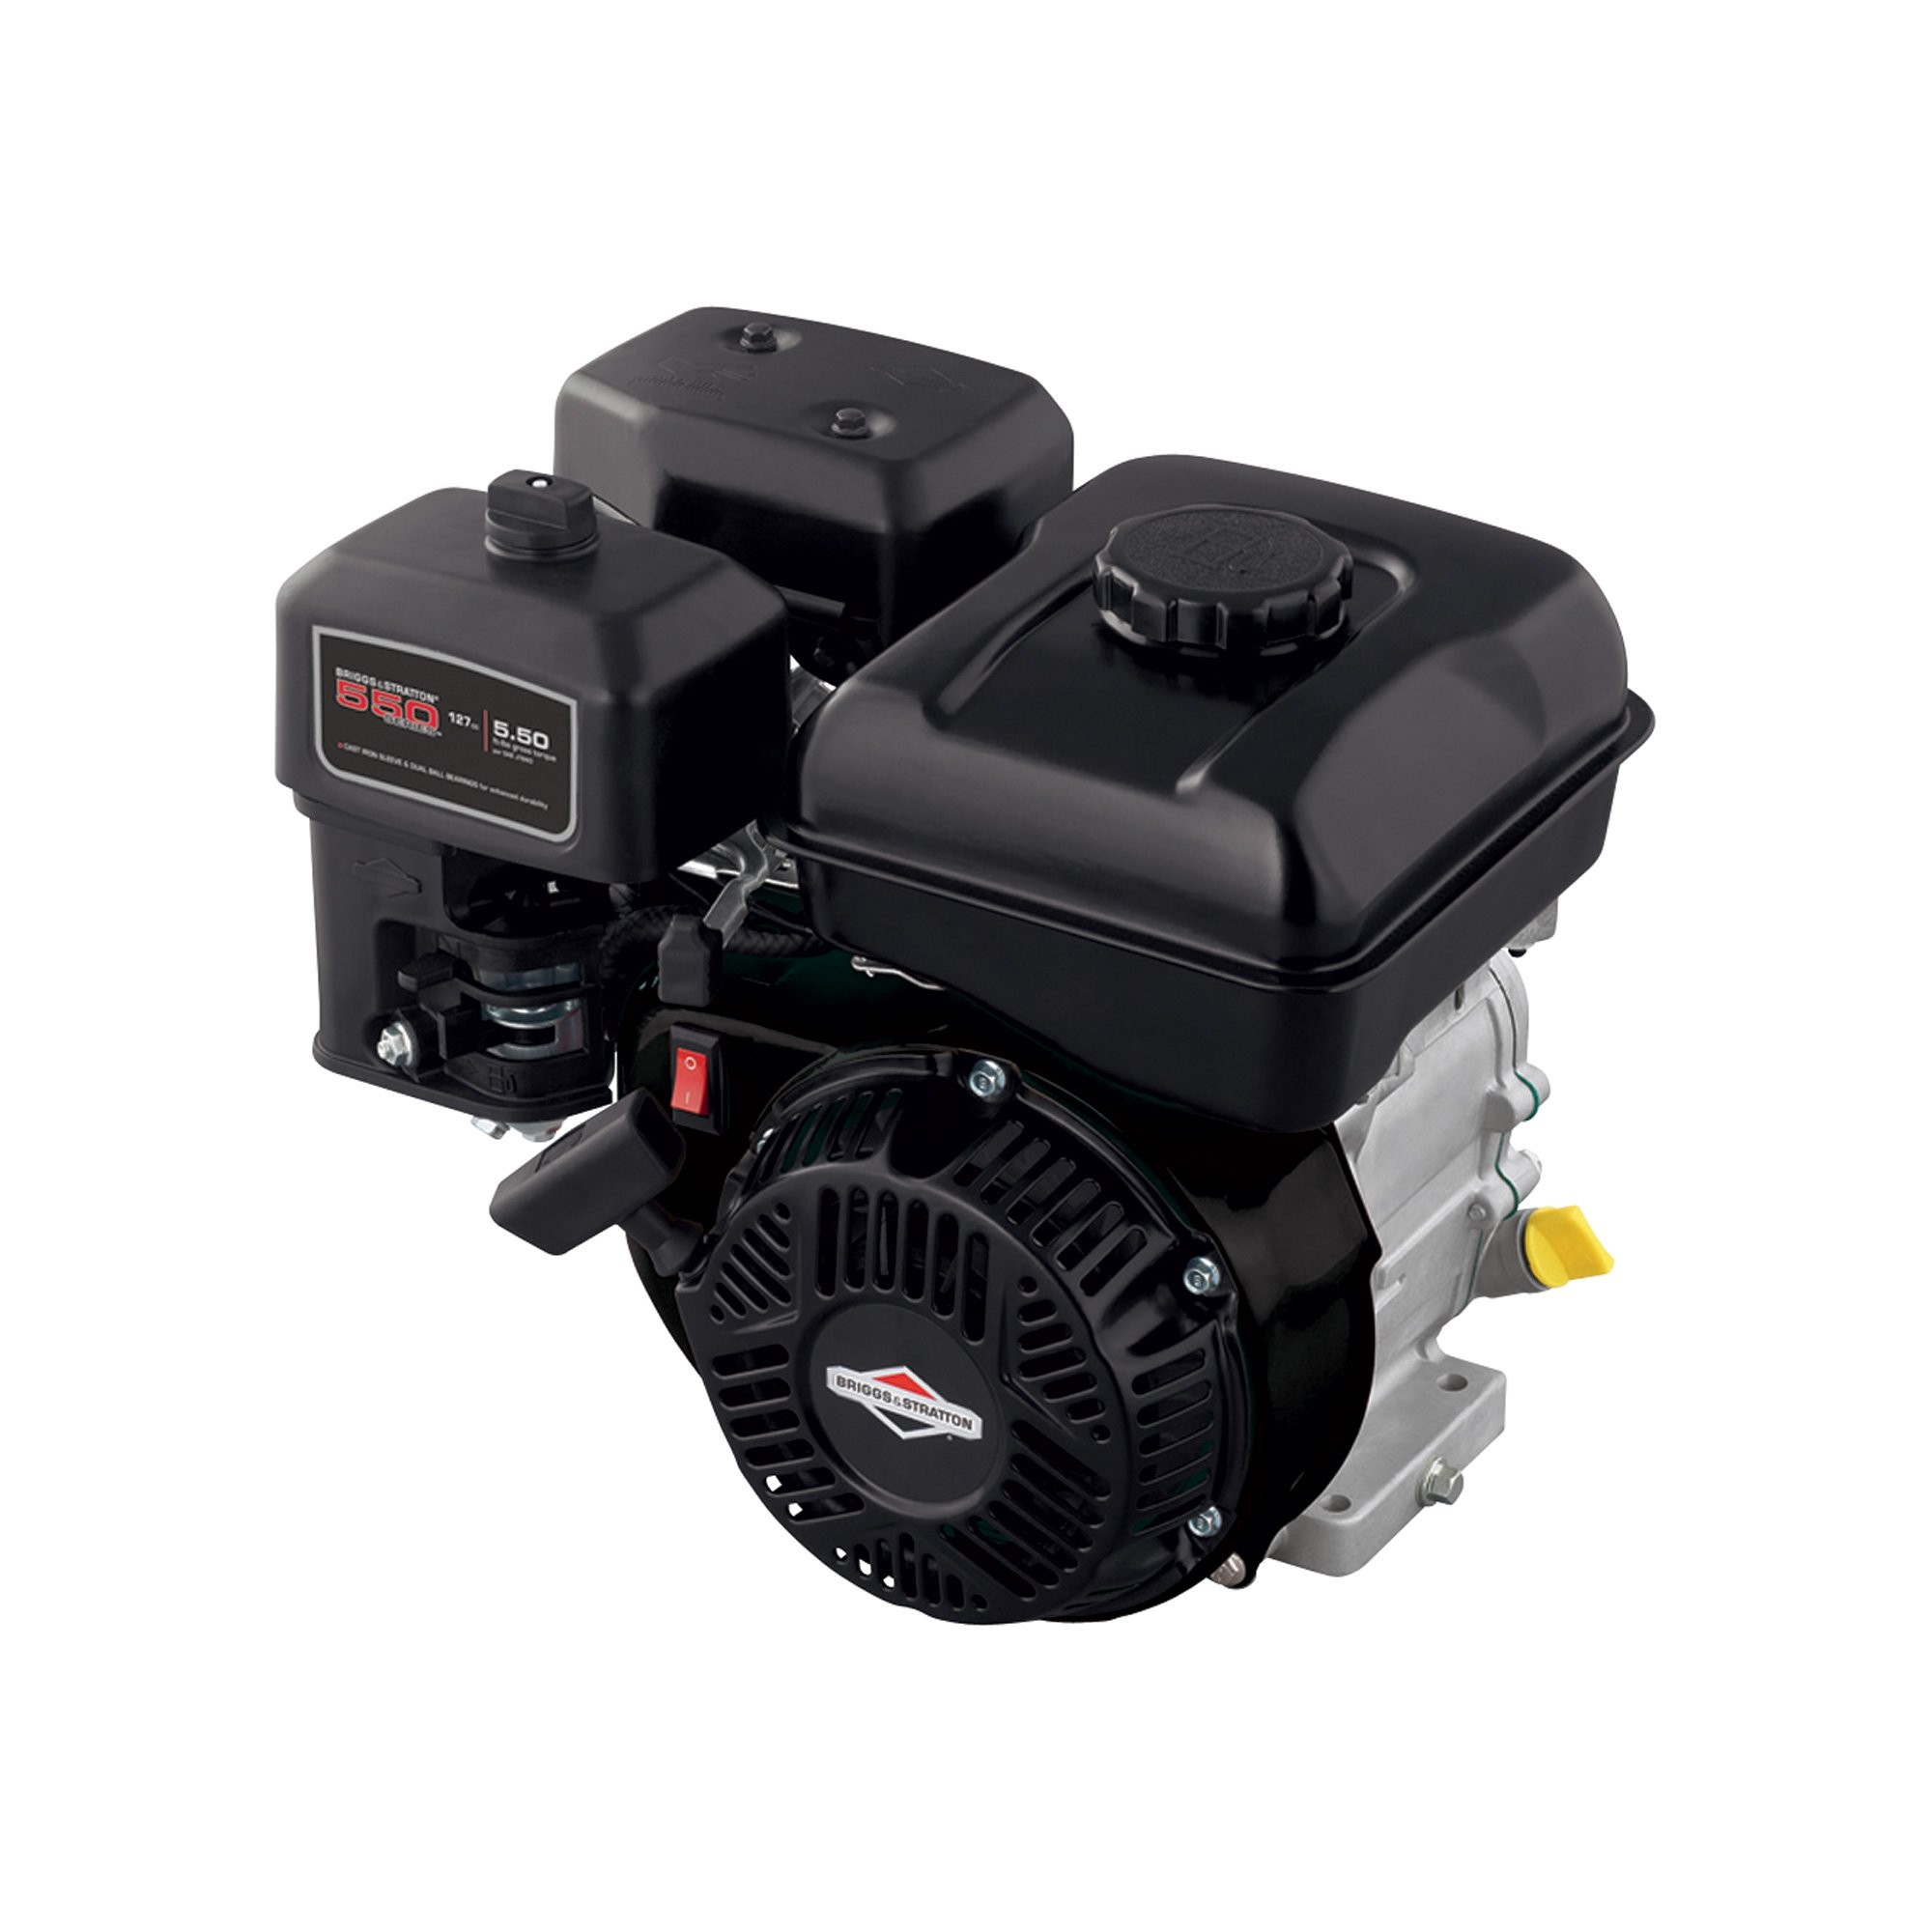 Briggs and Stratton 3 75 Hp Engine Diagram Briggs & Stratton 550 Series Horizontal Ohv Engine — 127cc 5 8in X Of Briggs and Stratton 3 75 Hp Engine Diagram